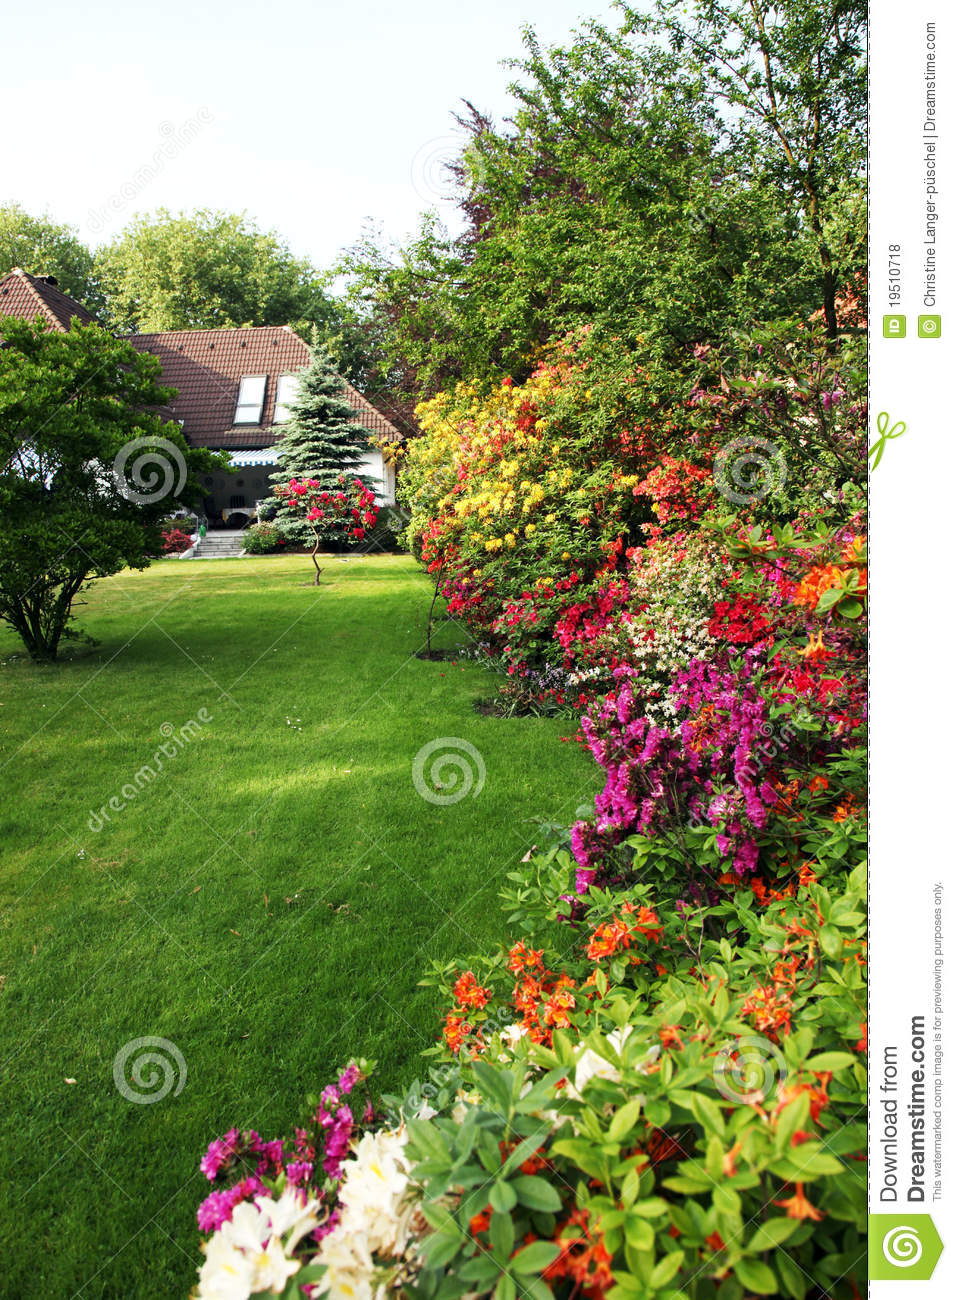 House with flower garden stock photo image of meadow for Classic house with flower garden